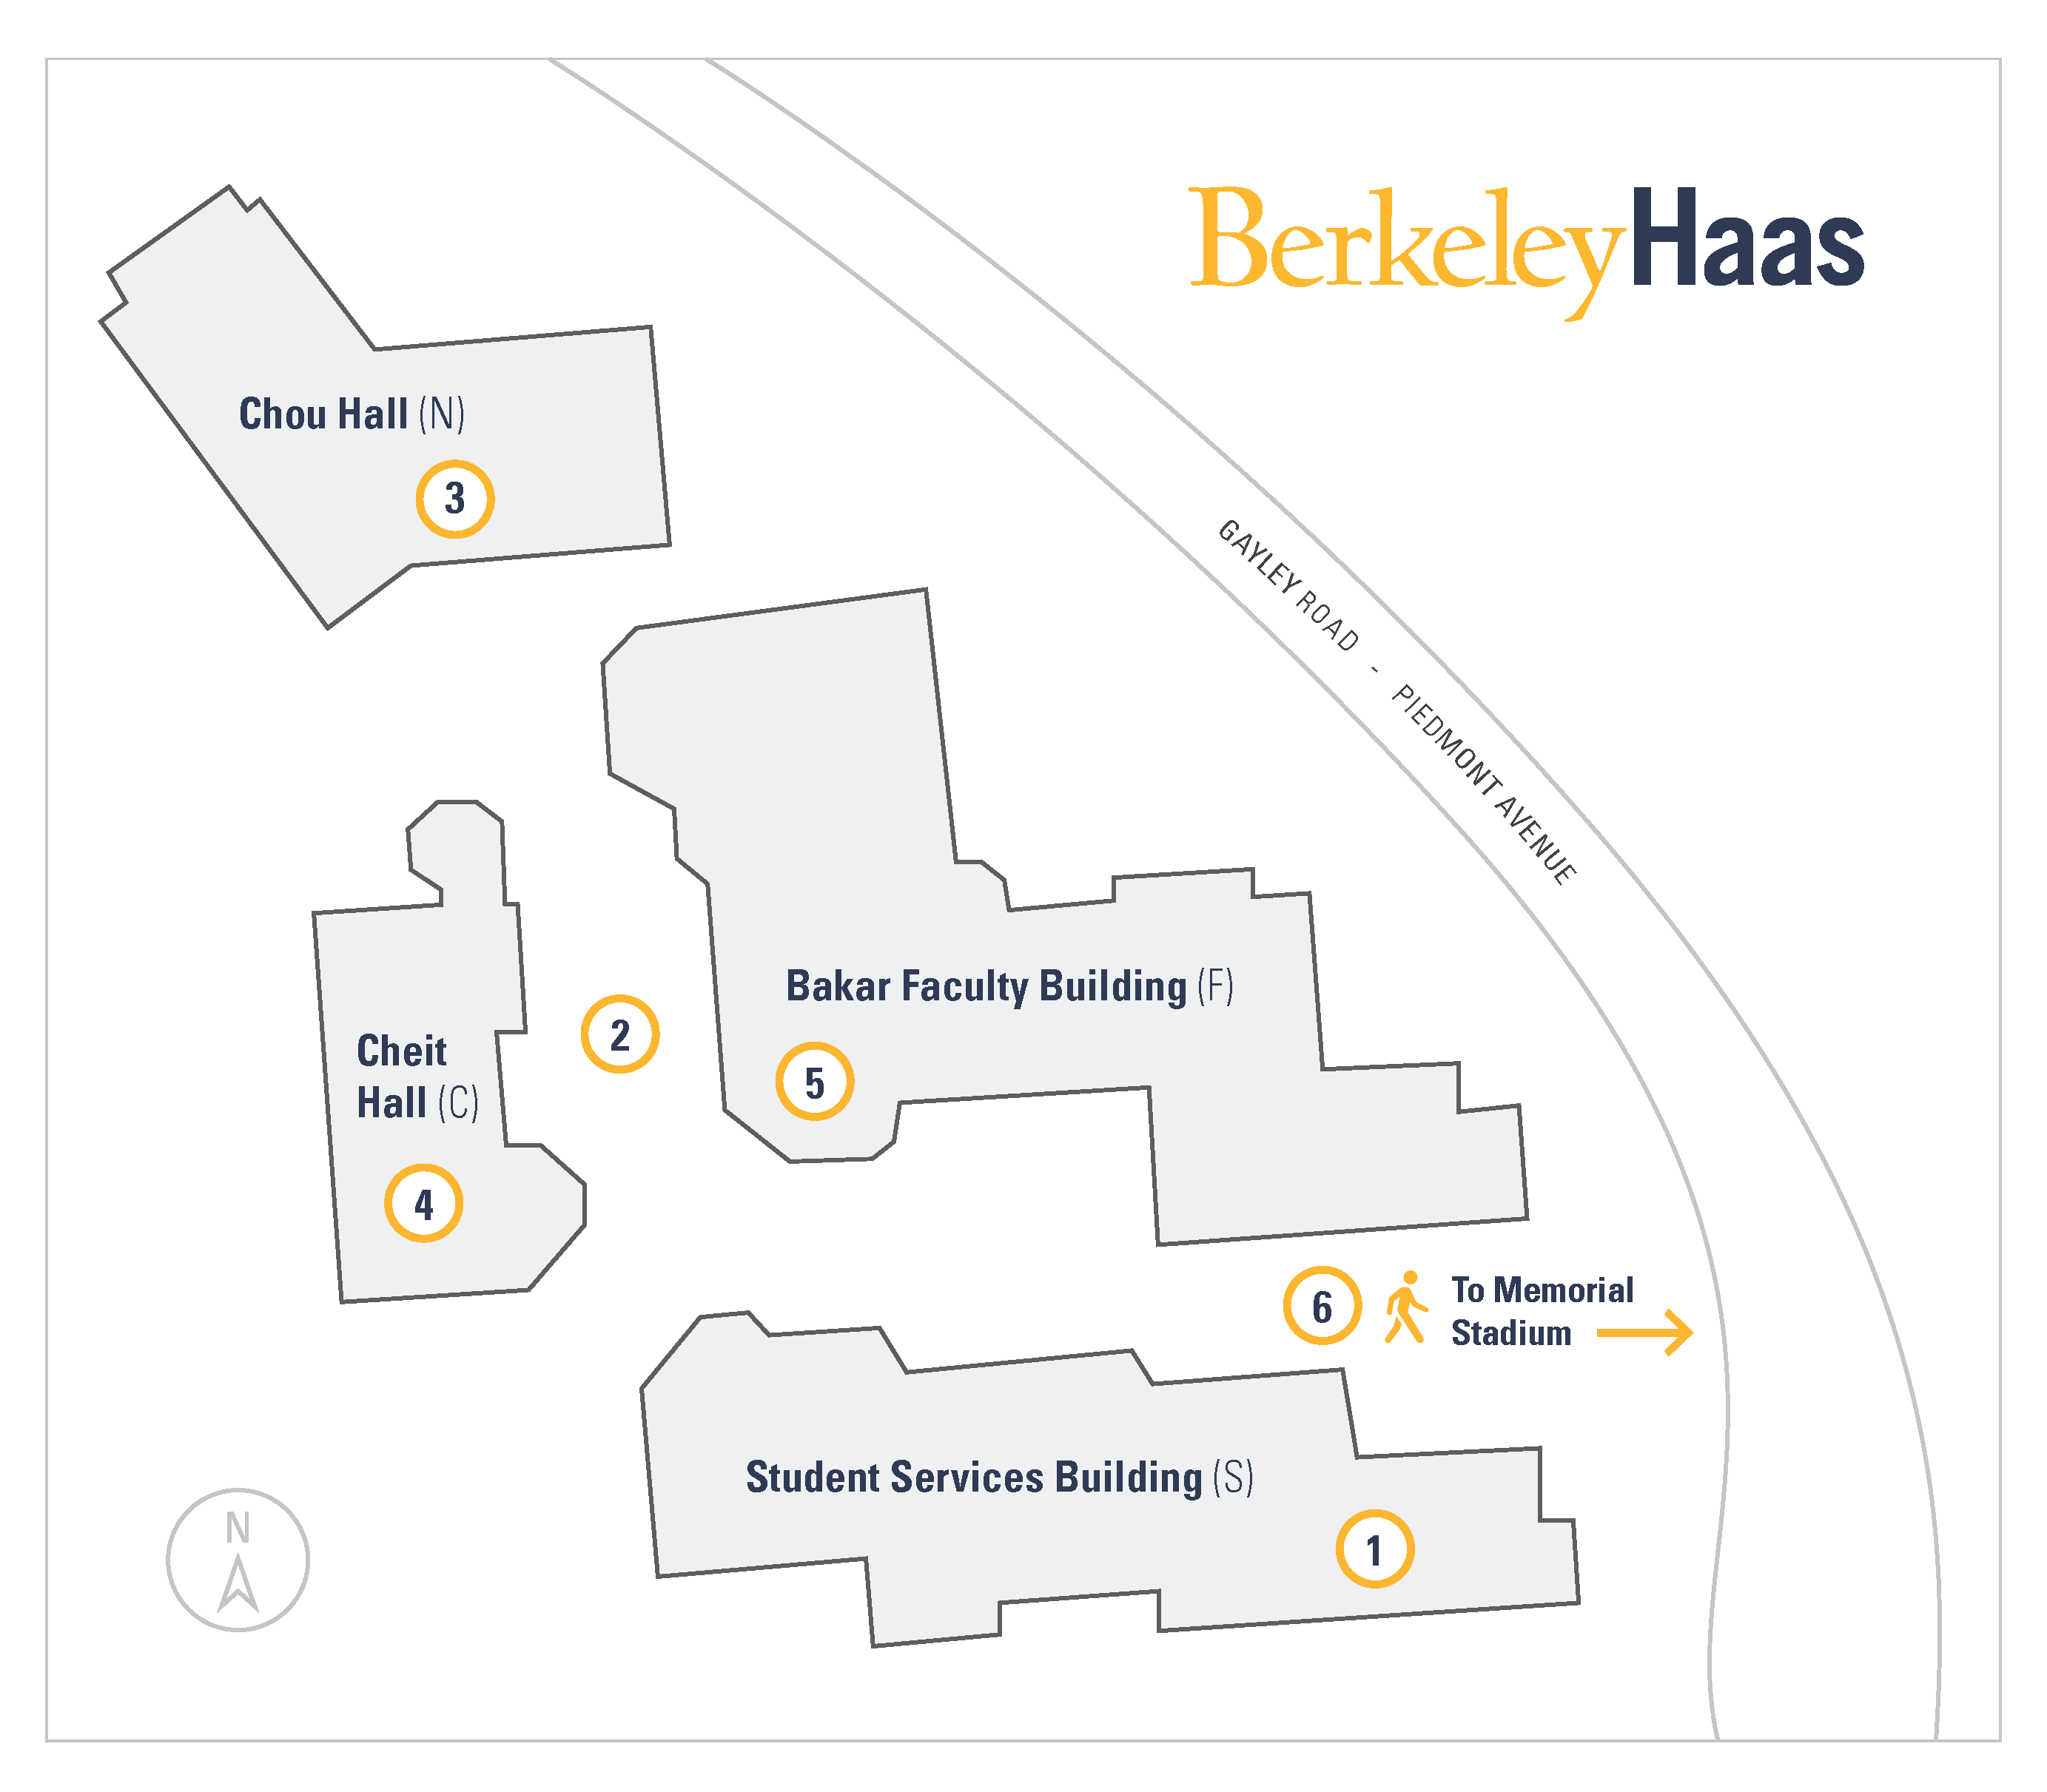 berkeley-haas-self-guided-tour-map